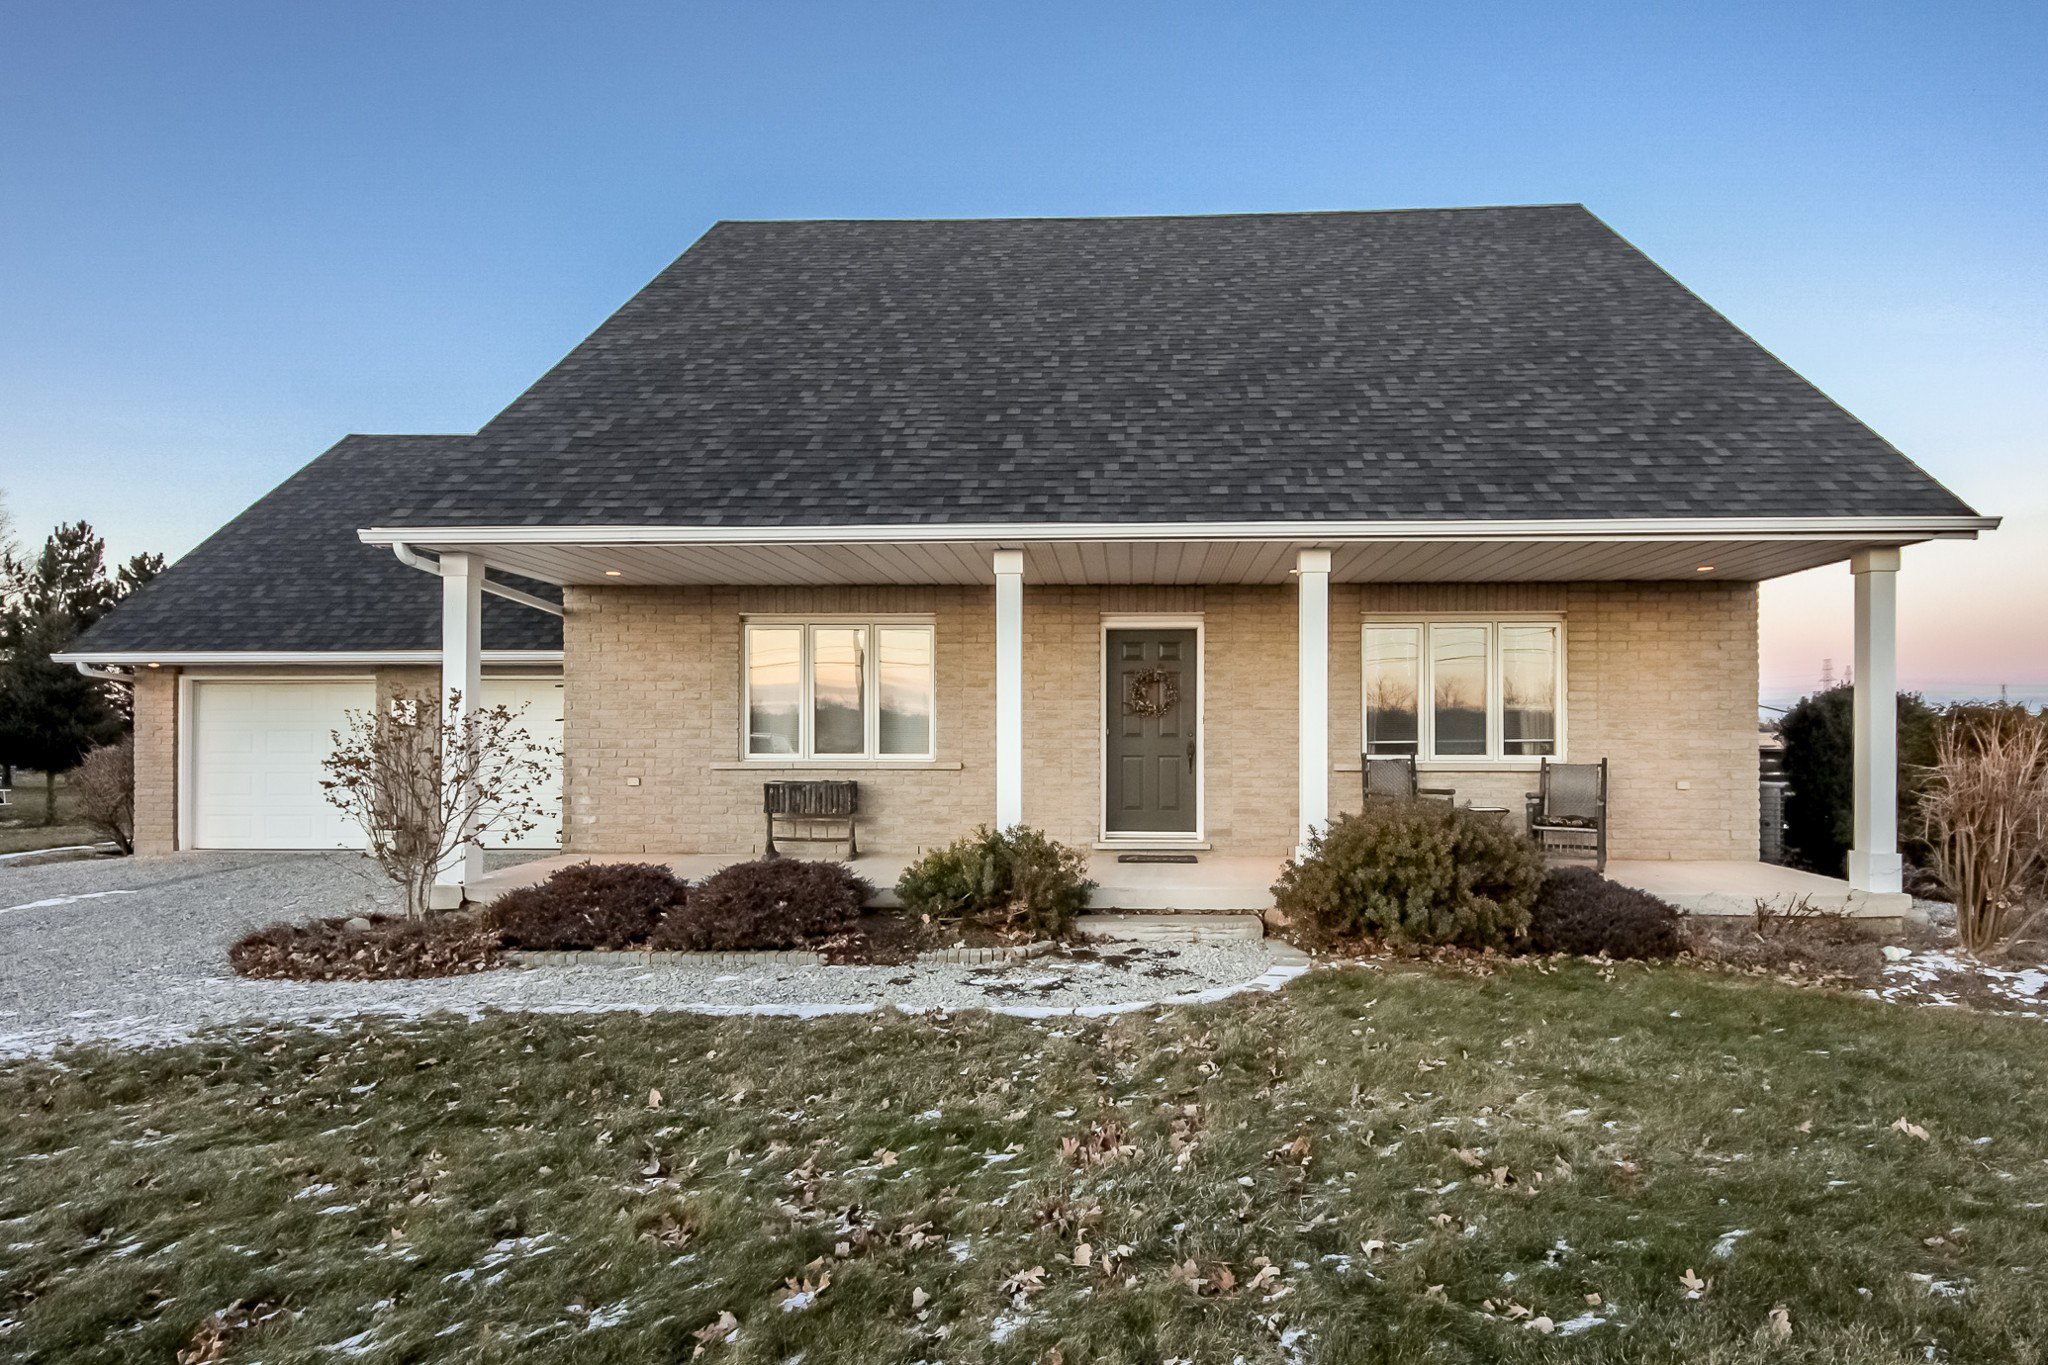 Main Photo: 8020 Twenty Road in Hamilton: House for sale : MLS®# H4045102